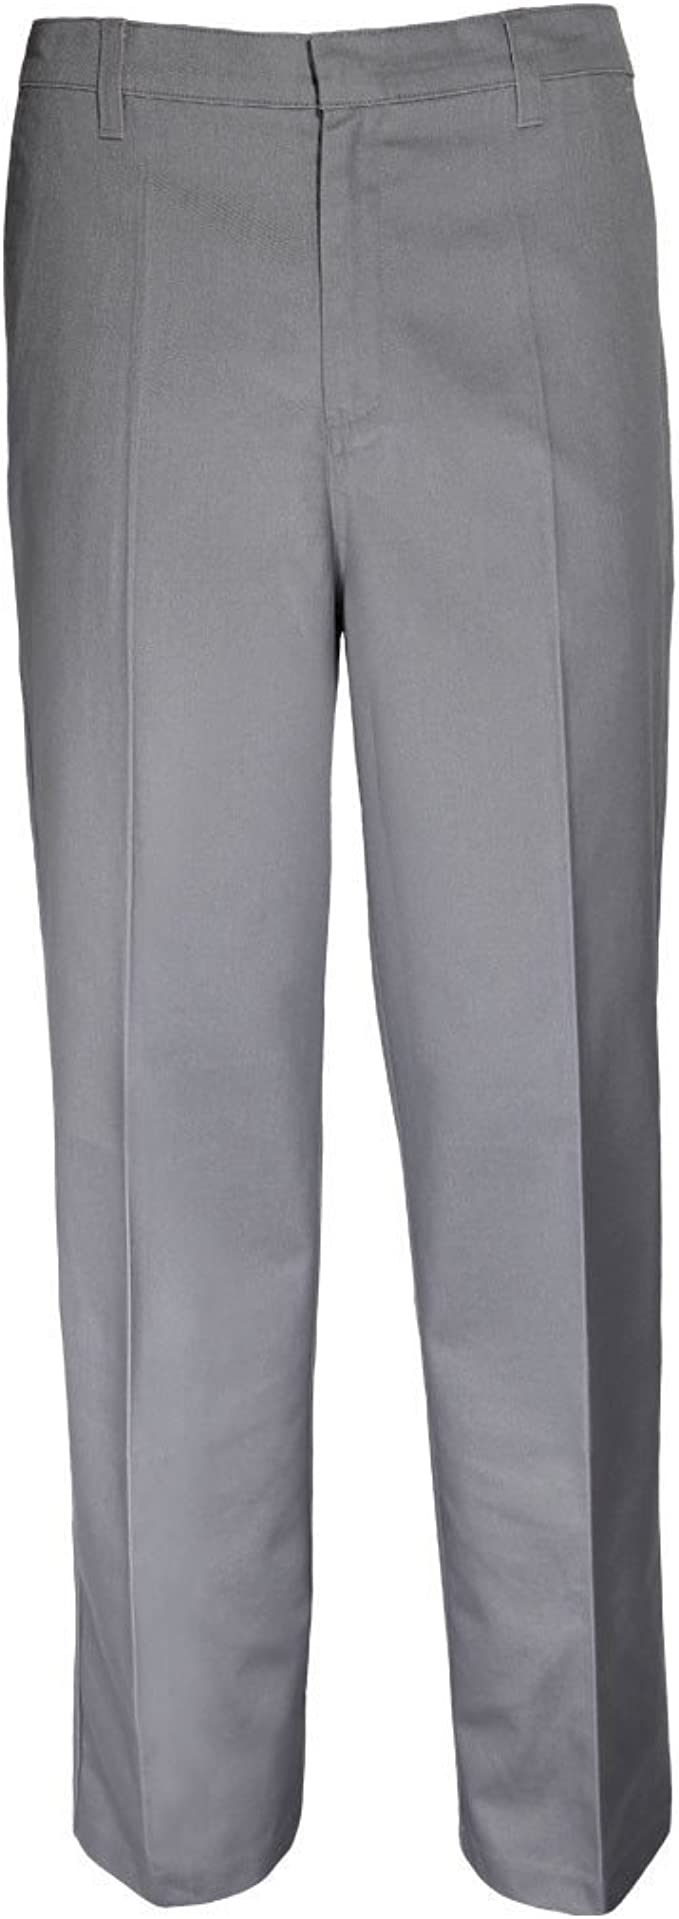 Pro5 Boys Slim Fit Long Pants